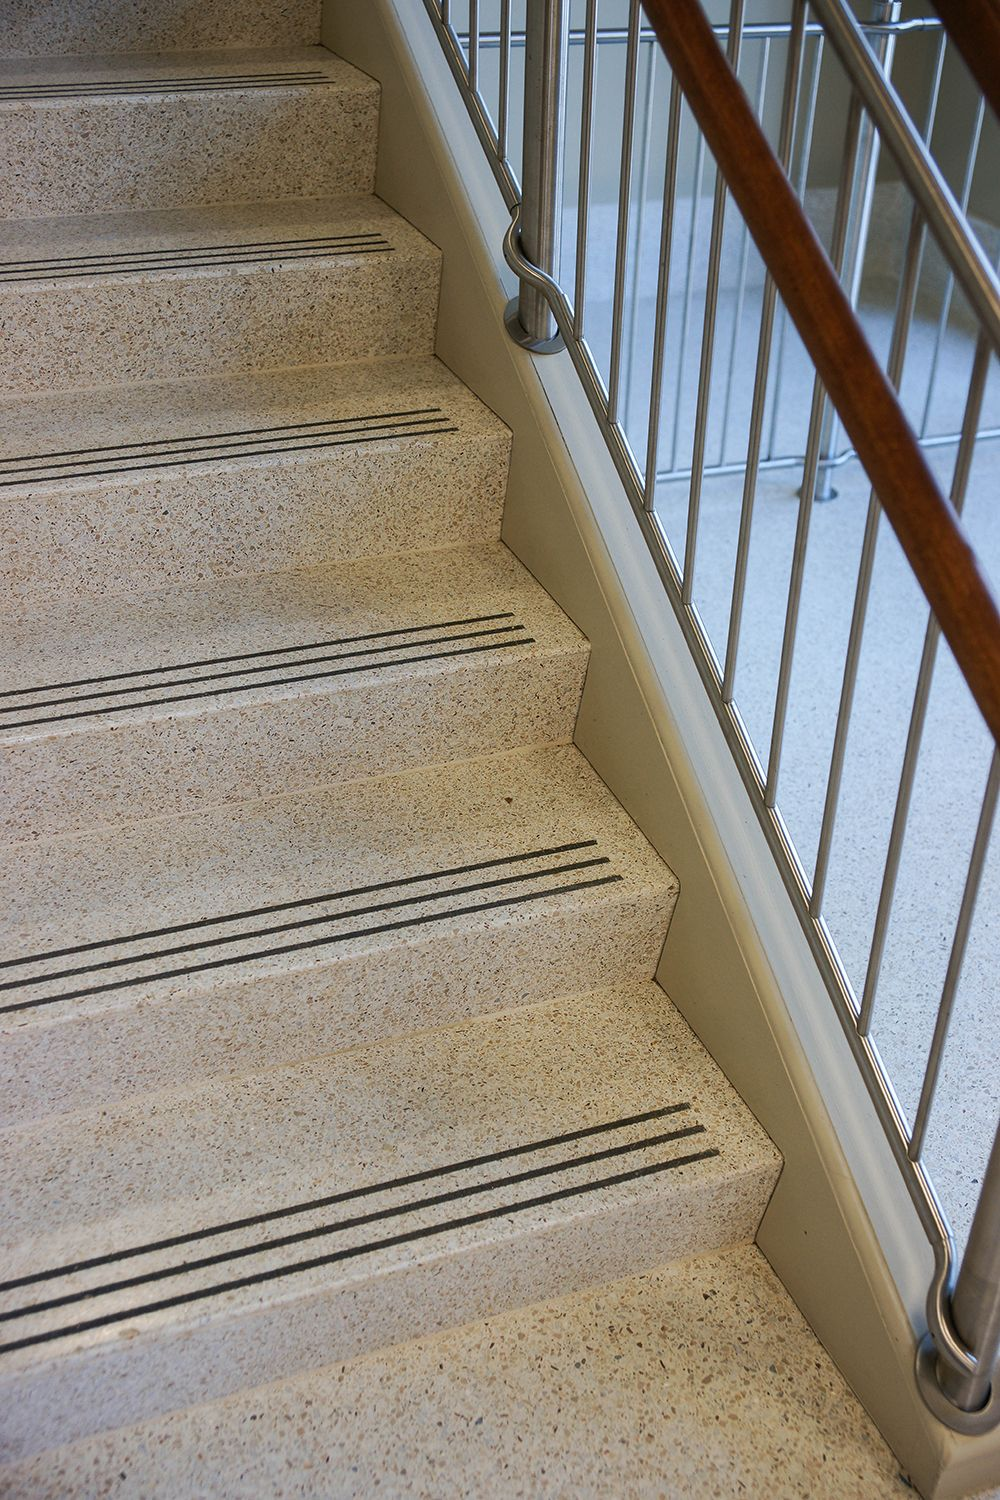 Best Image Result For Poured Concrete Stairs With Abrasive 400 x 300